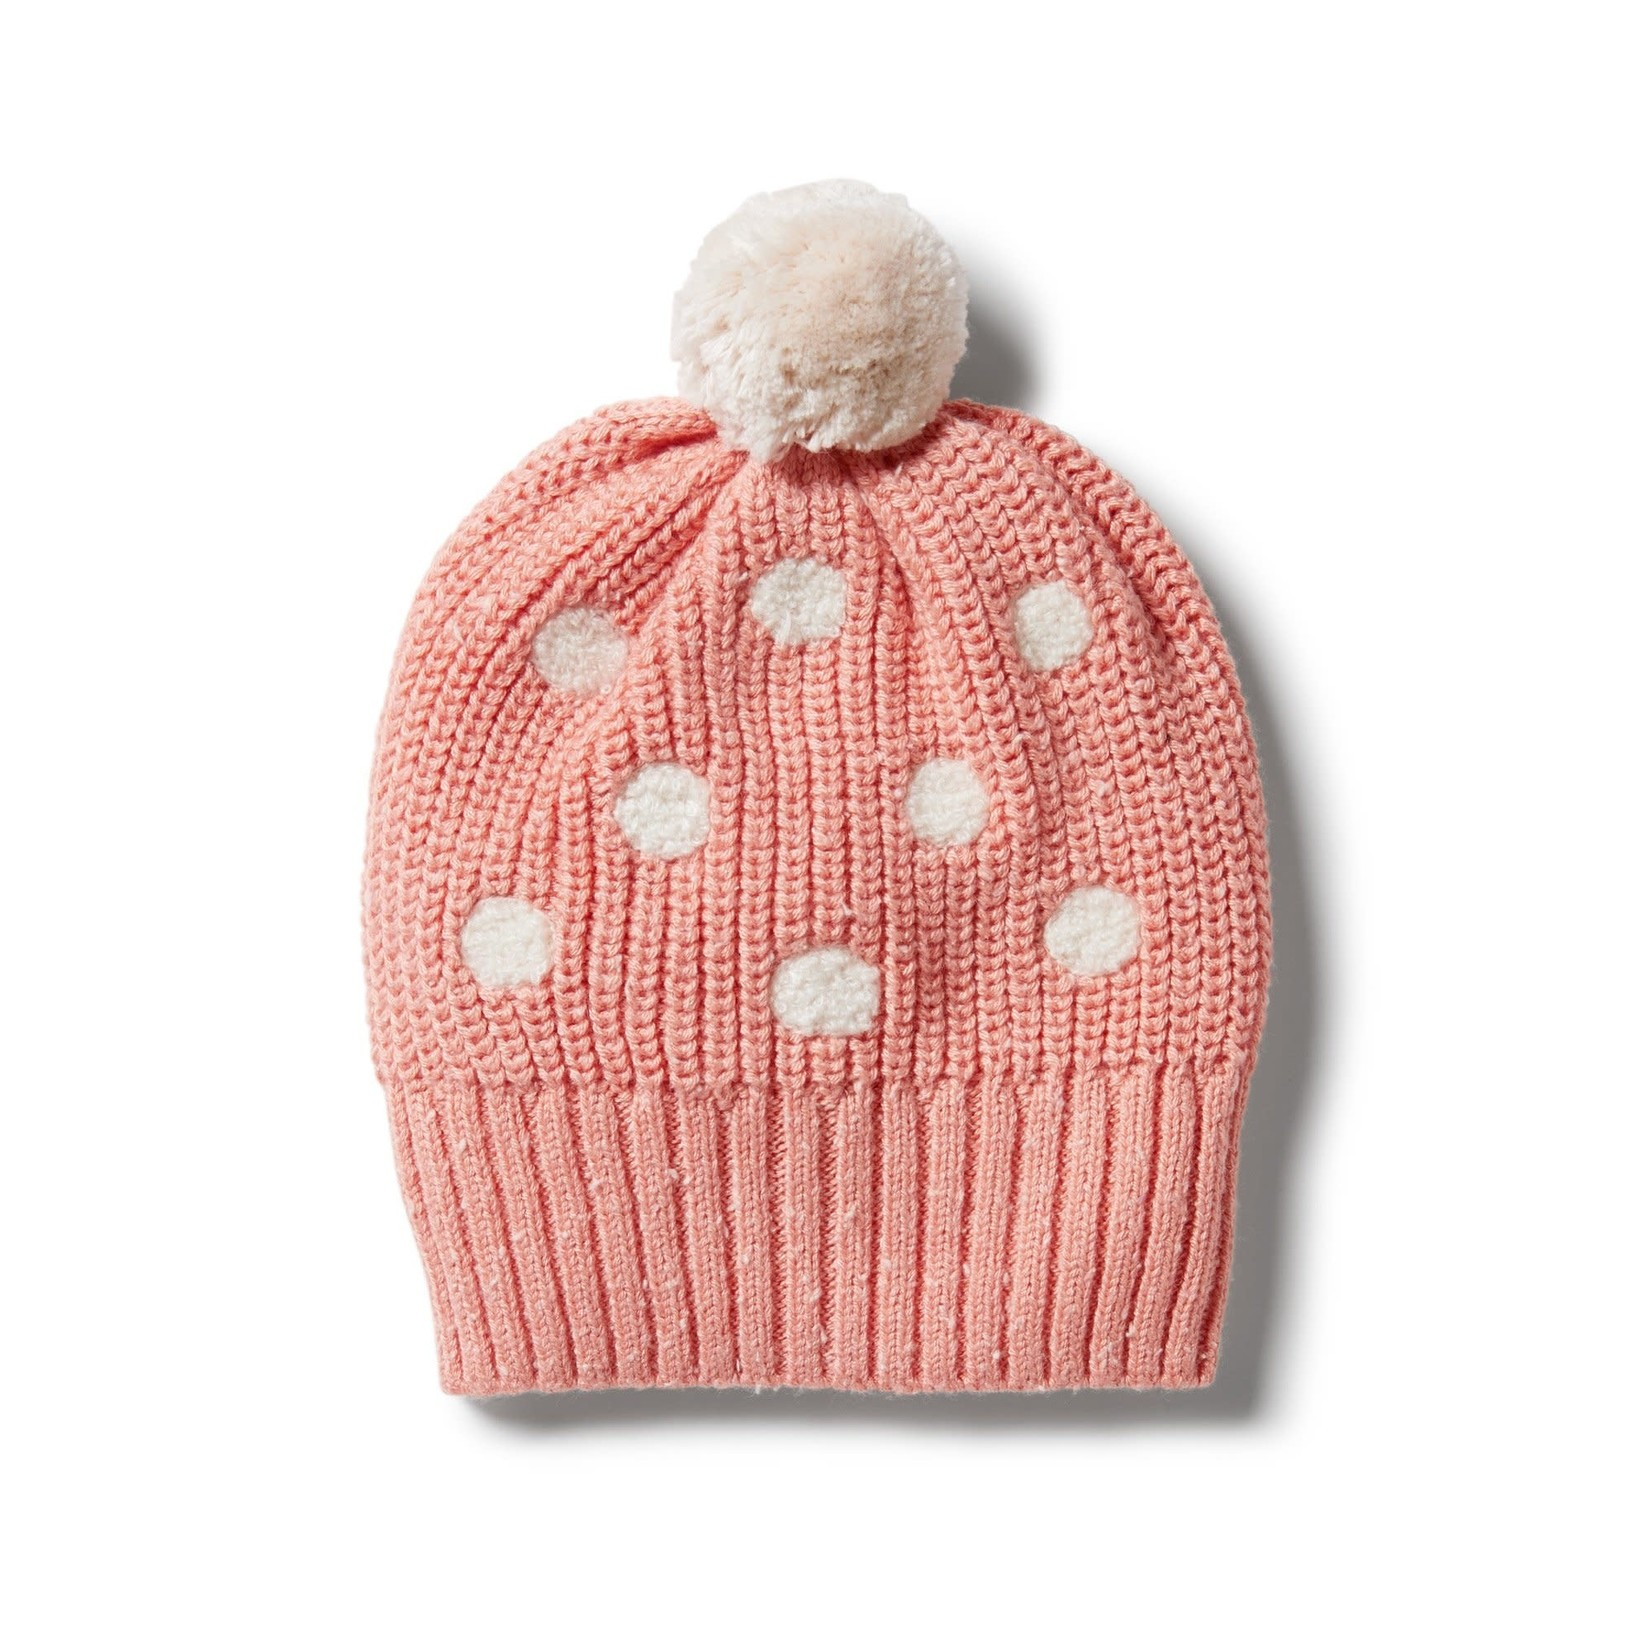 Wilson & Frenchy Wilson & Frenchy Knitted Spot Hat Flamingo Fleck